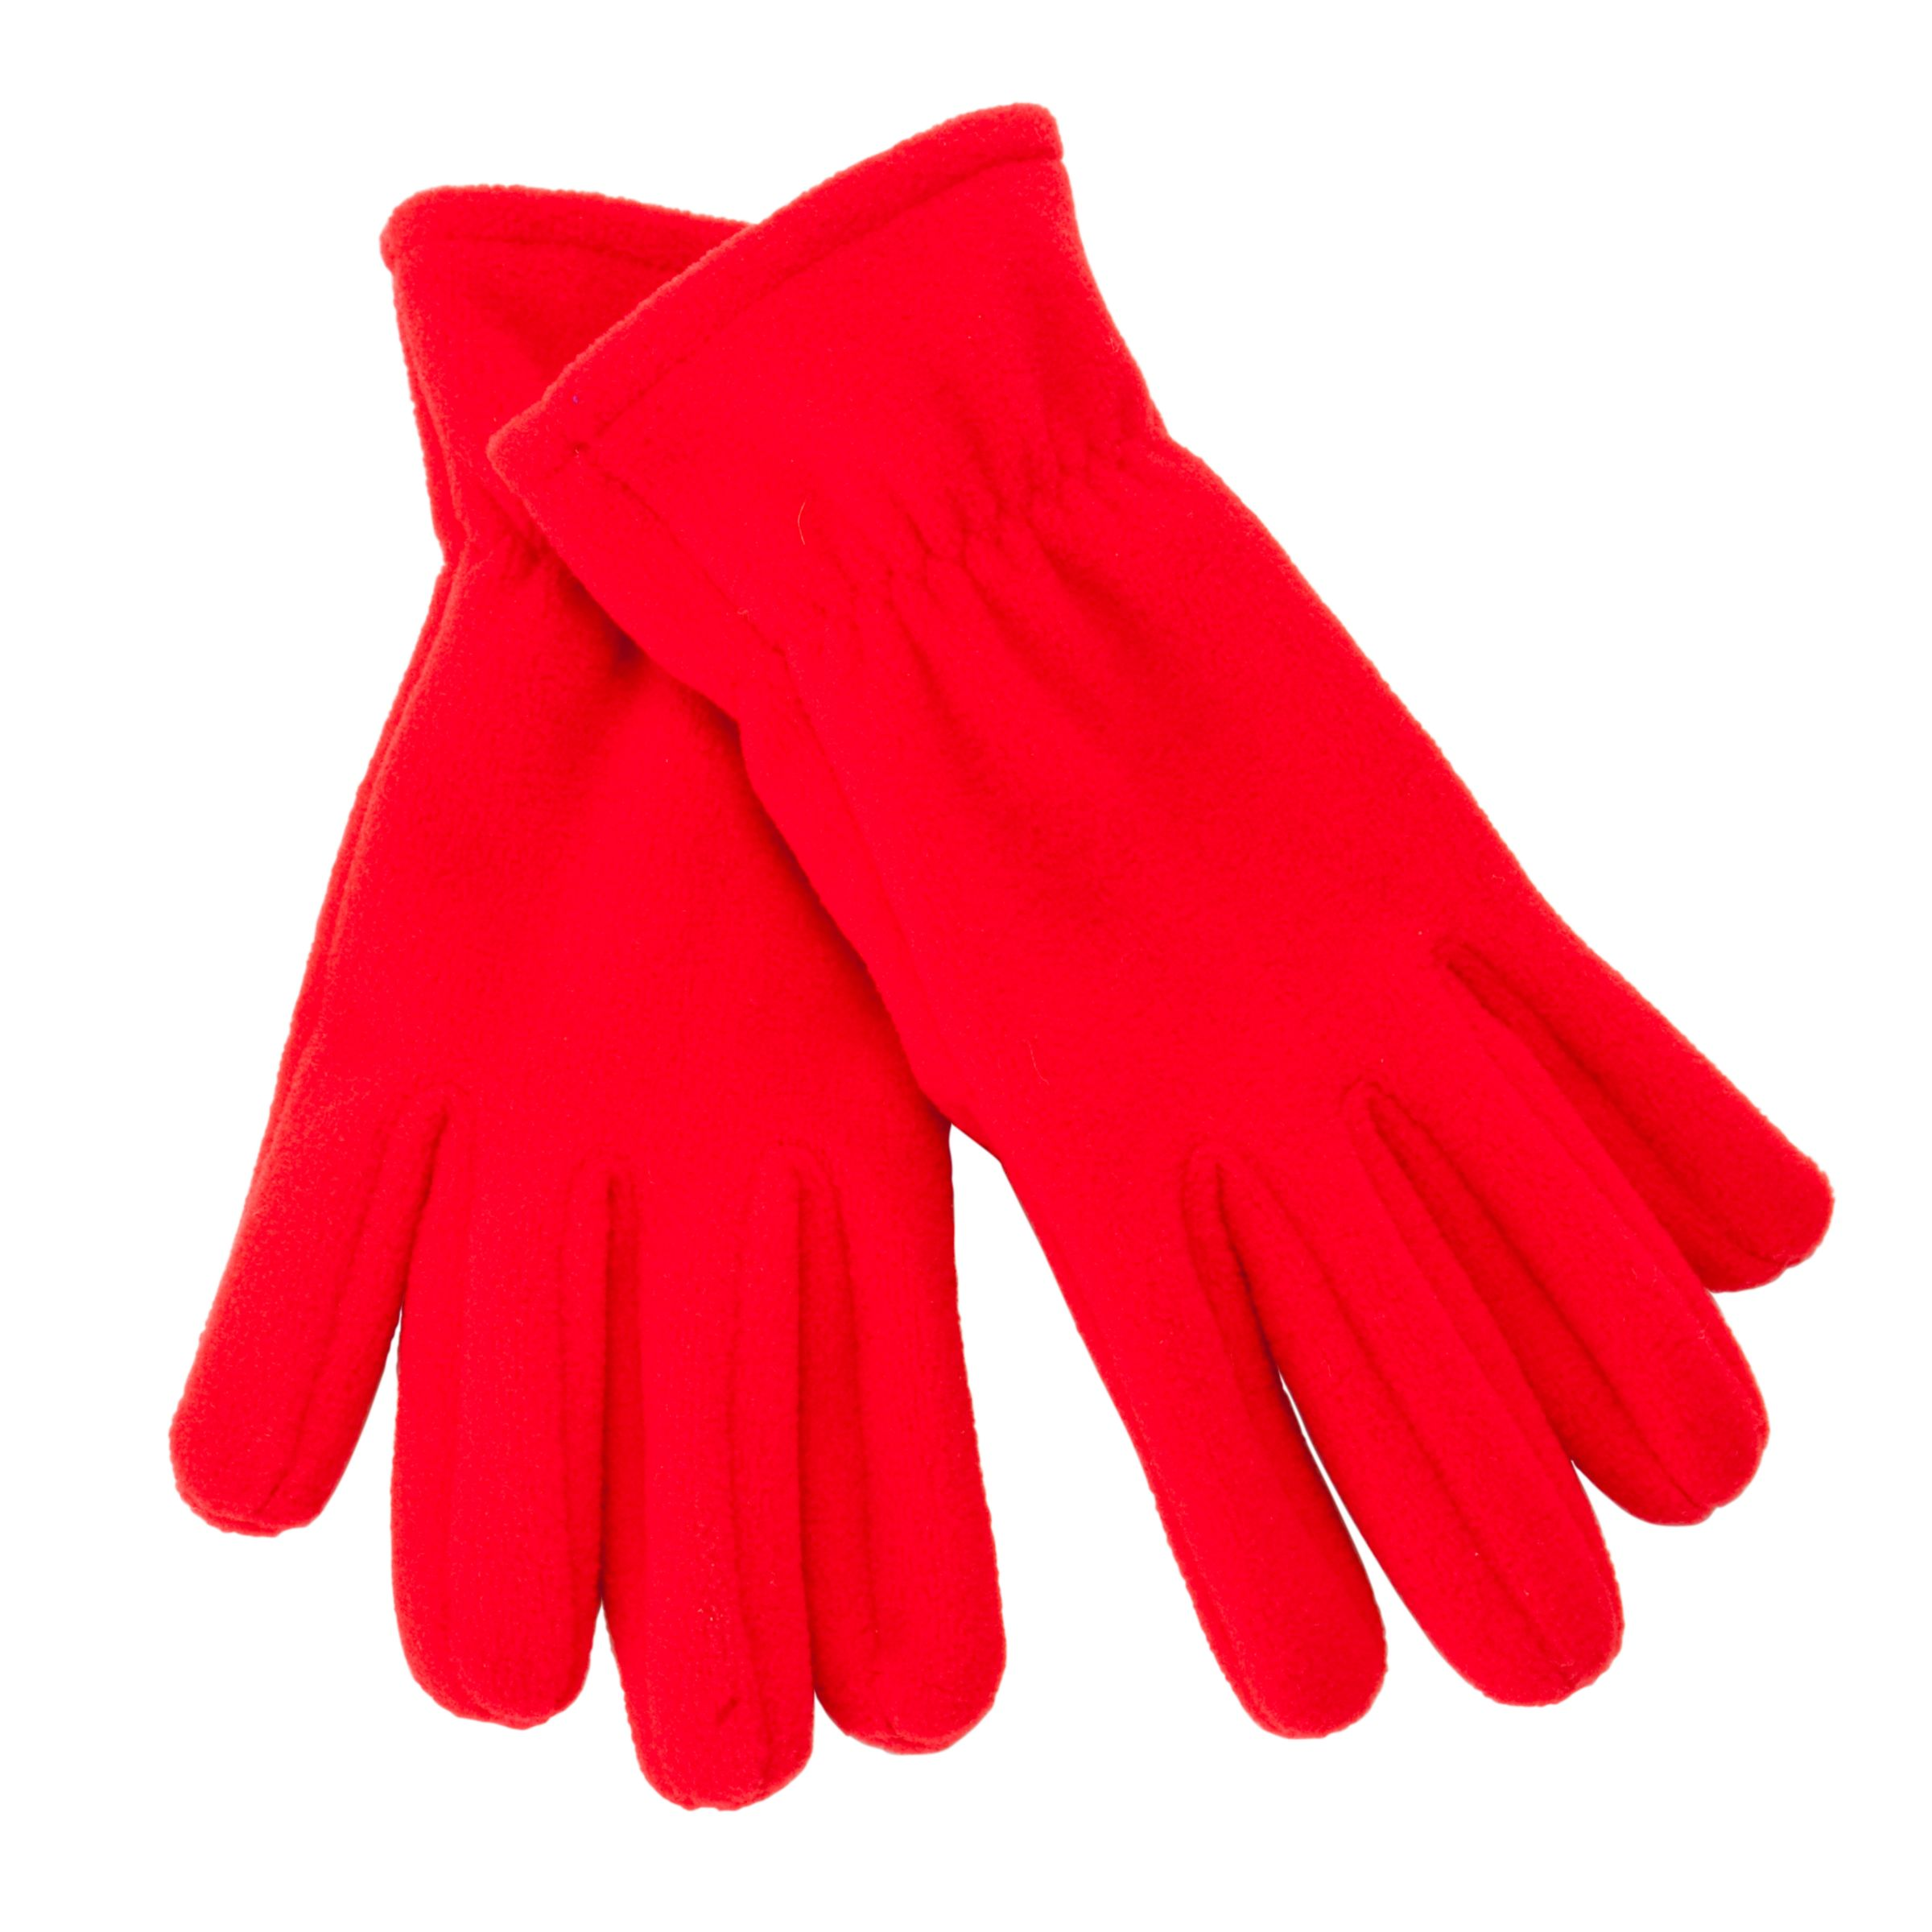 John Lewis Unisex Fleece Gloves, Red 493142